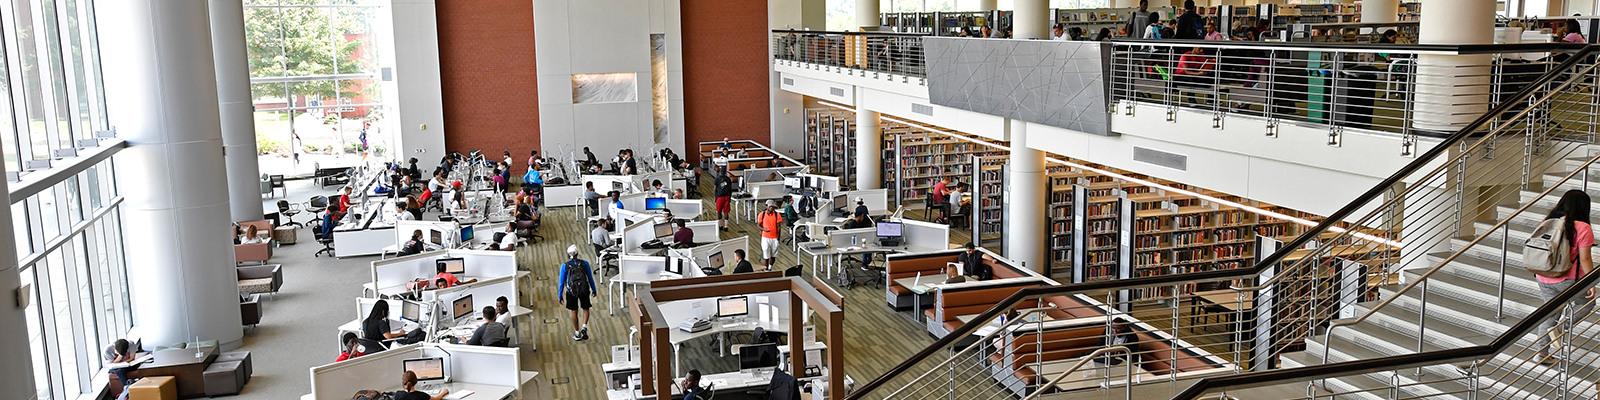 Students actively studying in the computer area of the Library.